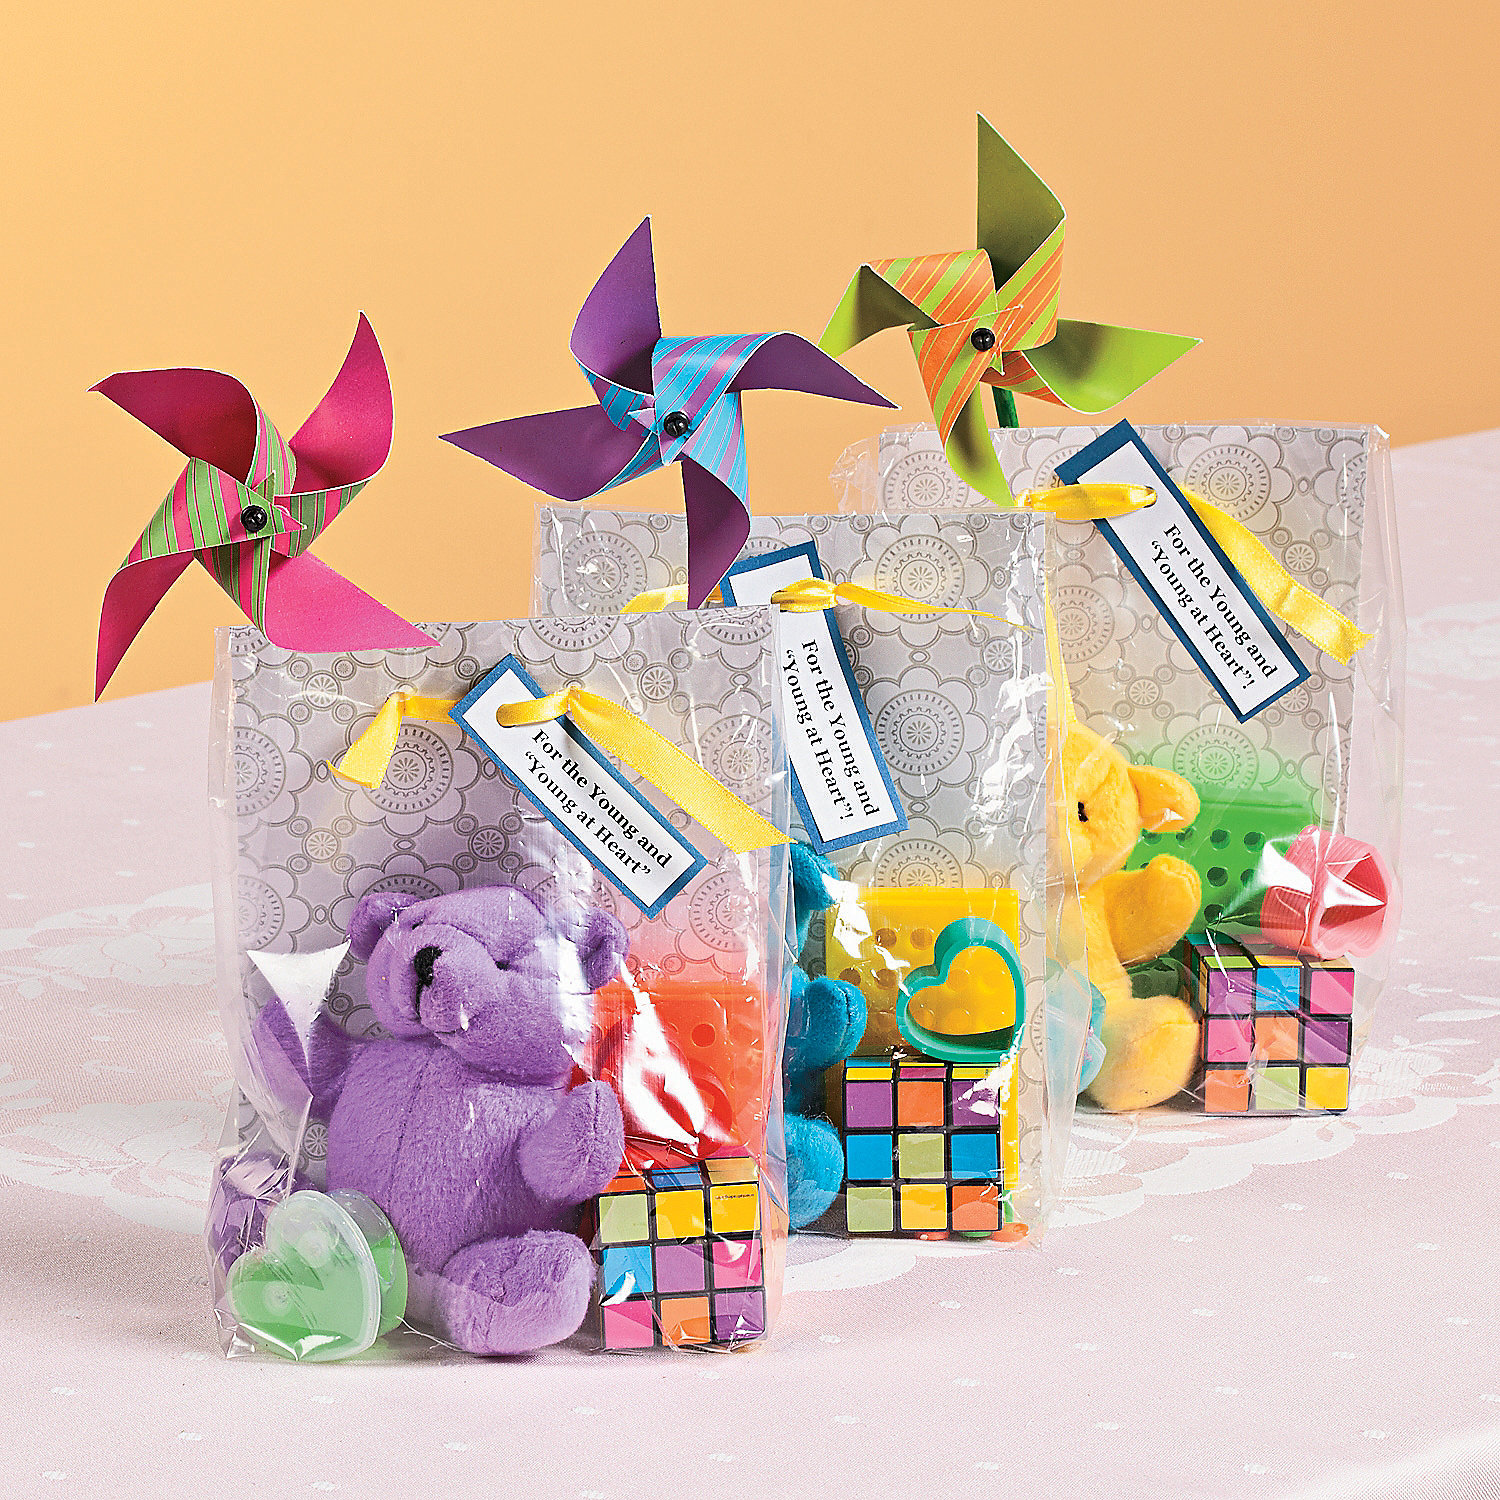 """Wedding Ideas For Kids: For The Young And The """"Young At Heart"""" Wedding Favors Idea"""